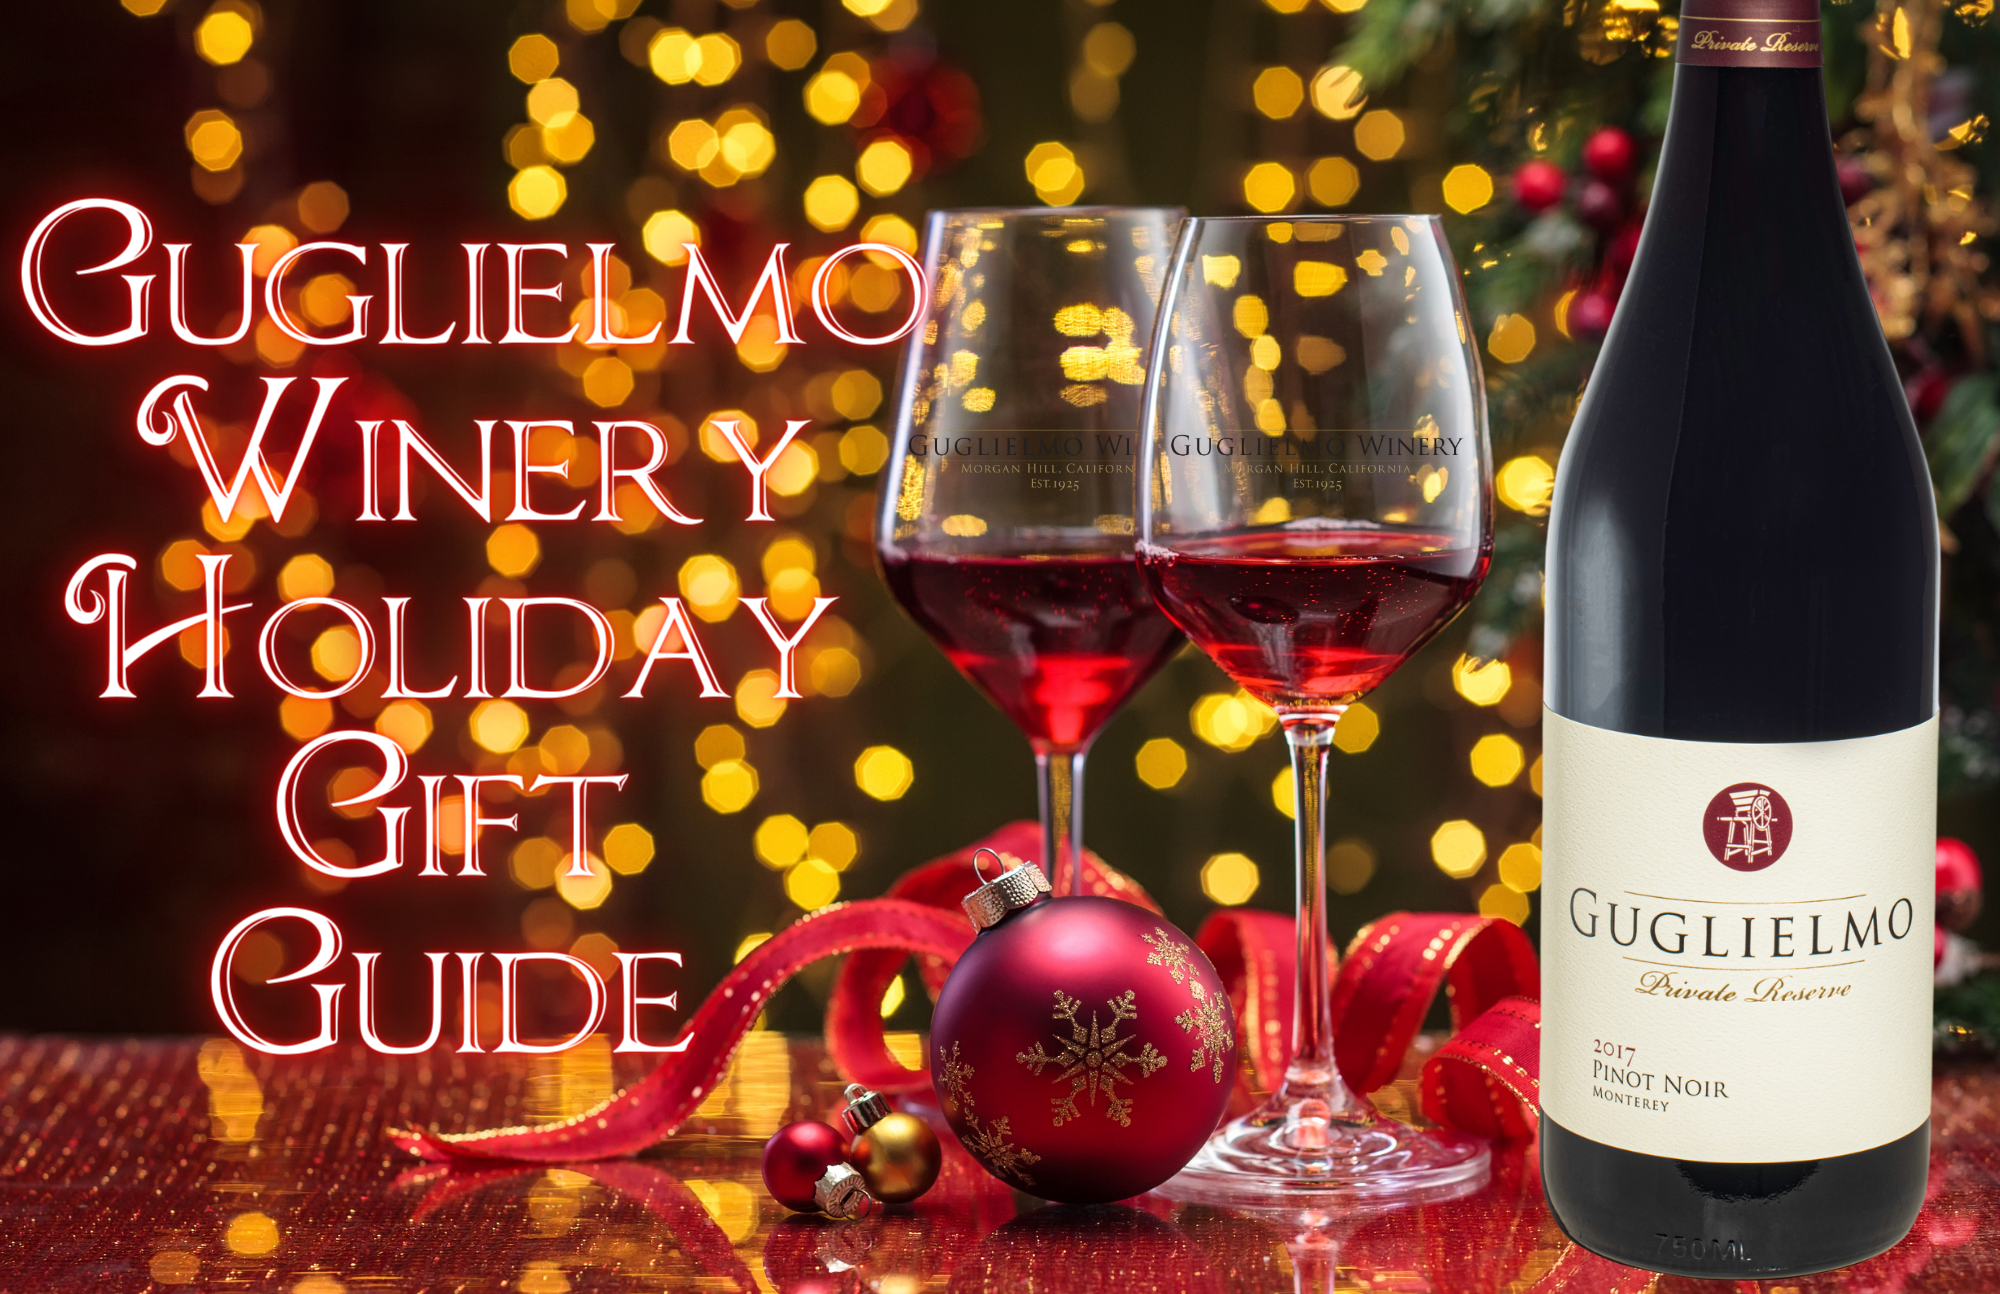 Guglielmo Winery Holiday Gift Guide